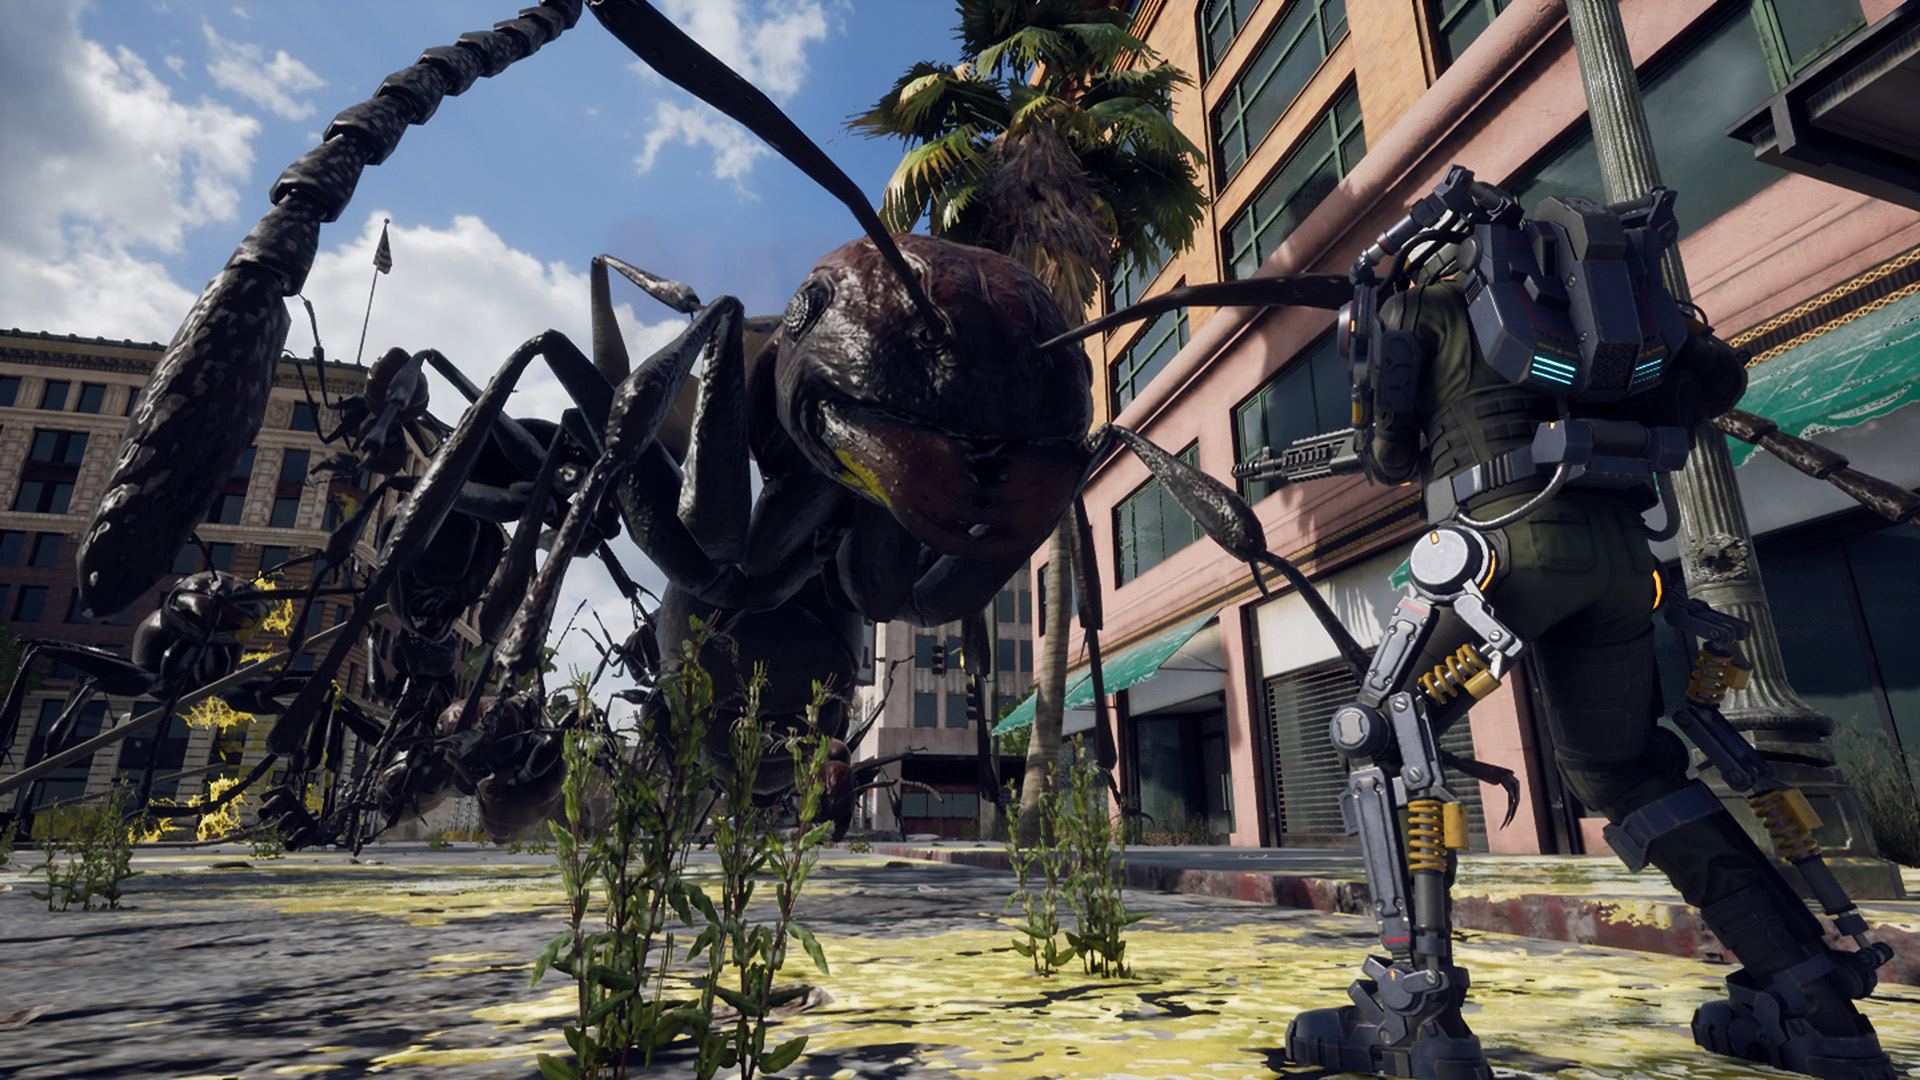 Earth Defense Force: Iron Rain angekündigt, Gameplay und Termin für EDF 5